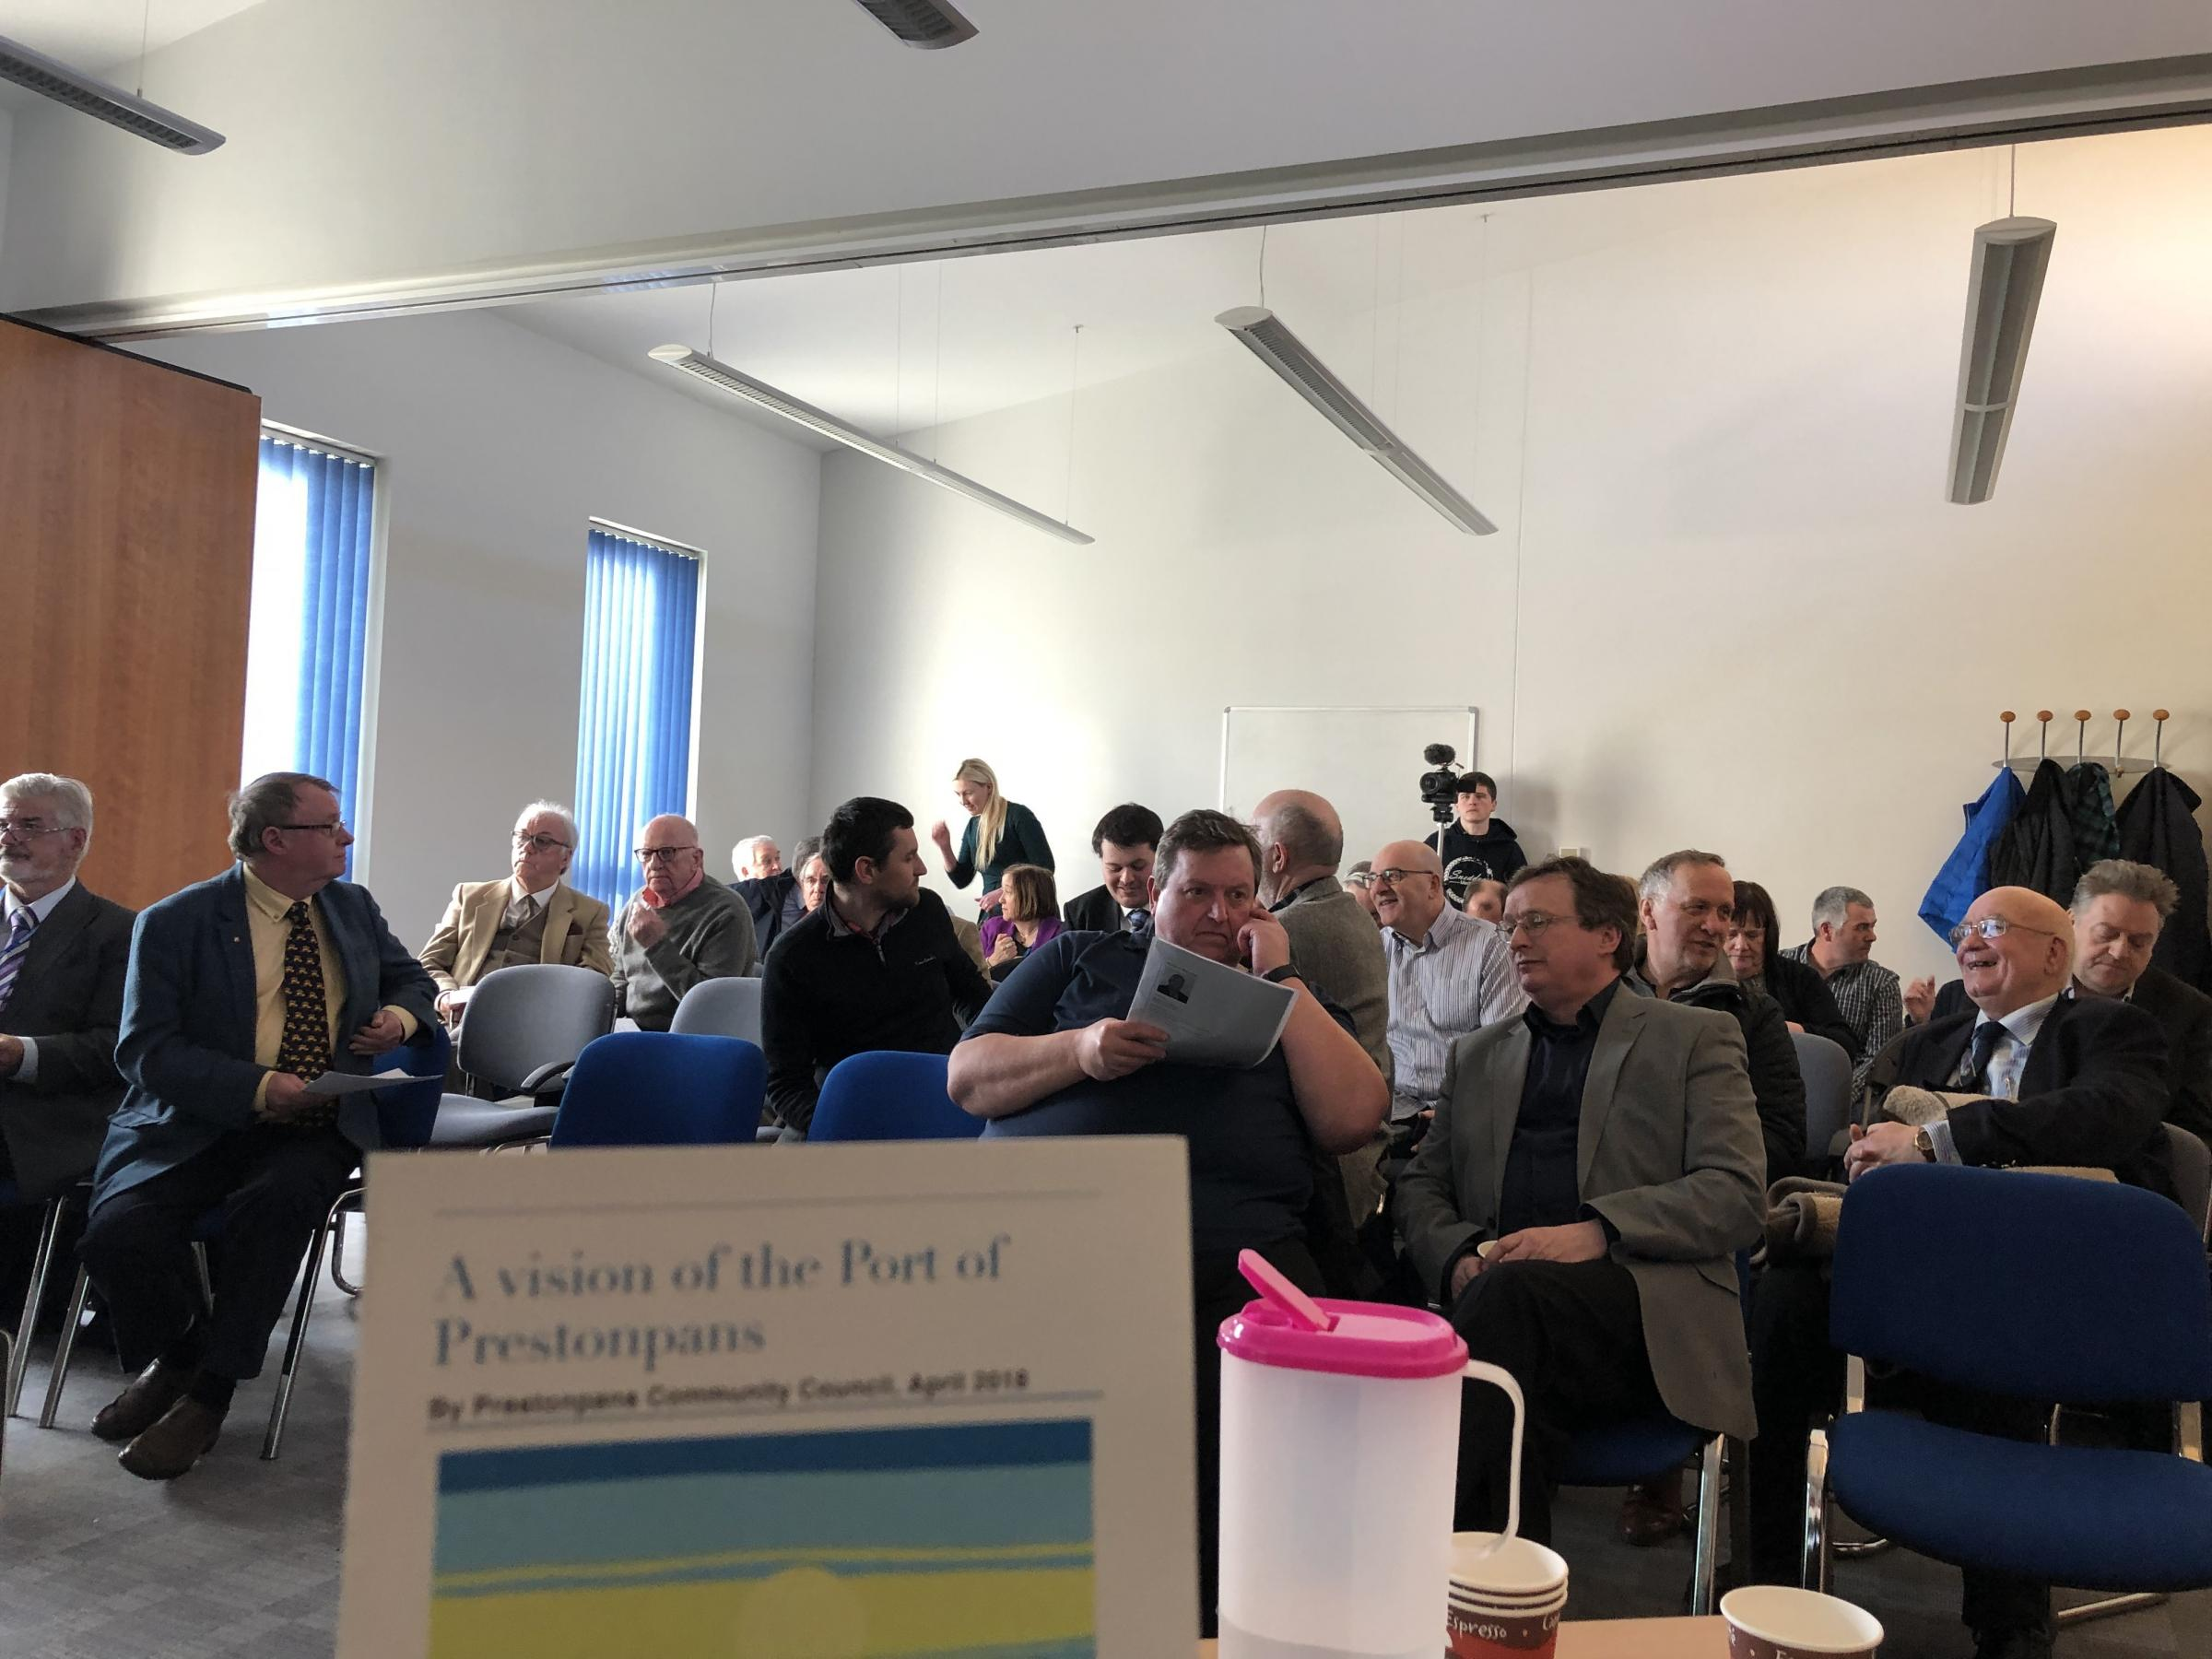 A conference on the Port of Prestonpans was held in the town